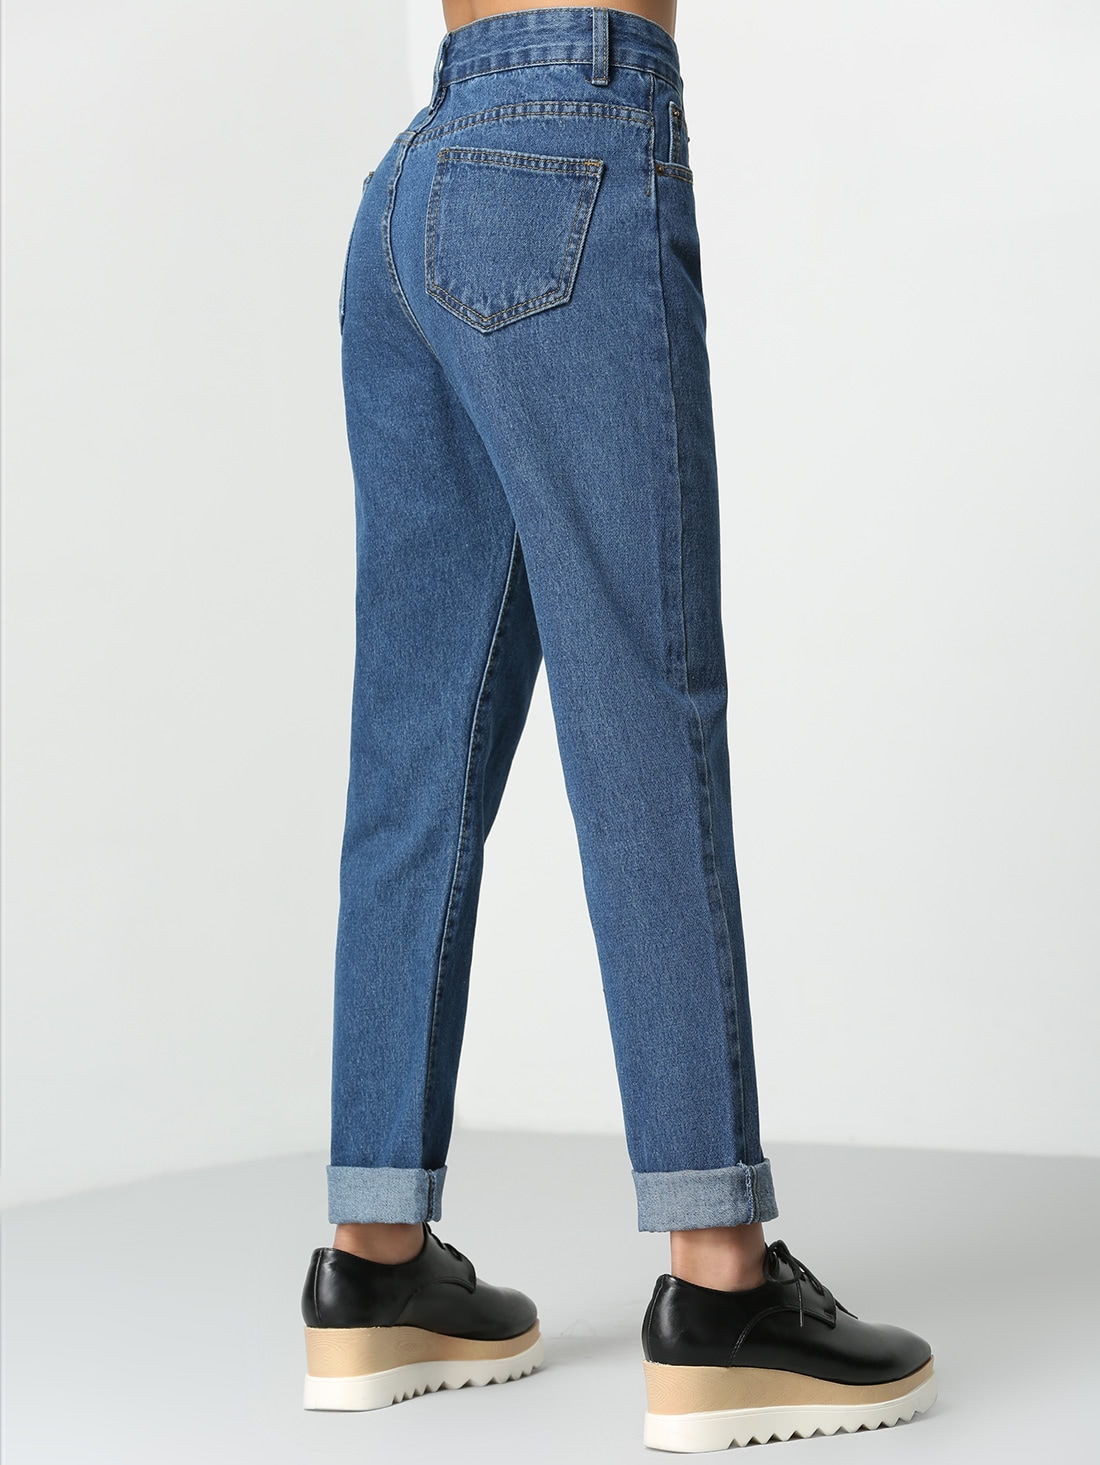 Shopping queen high waist jeans